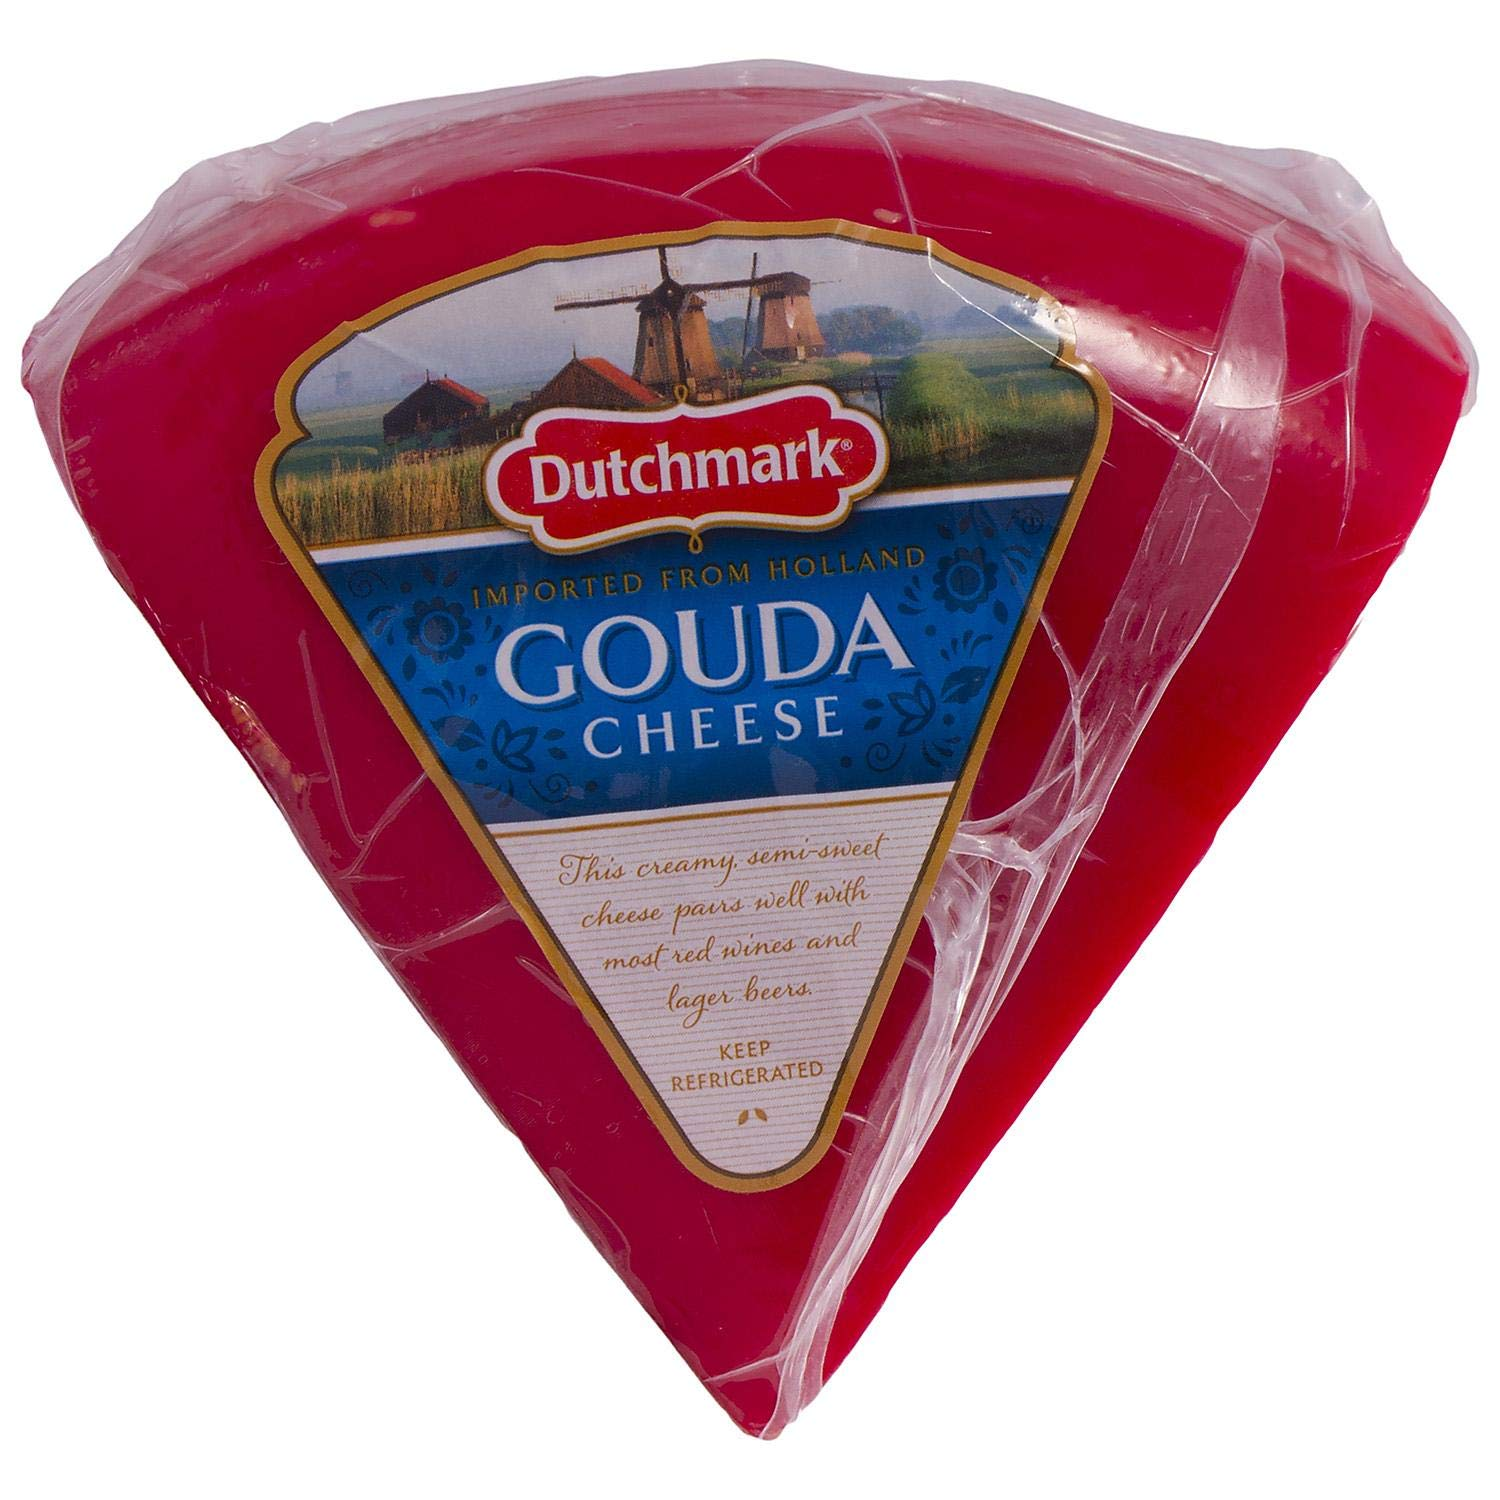 Evaxo Red Wax Gouda Cheese (Priced Per Pound) - 1-3lbs